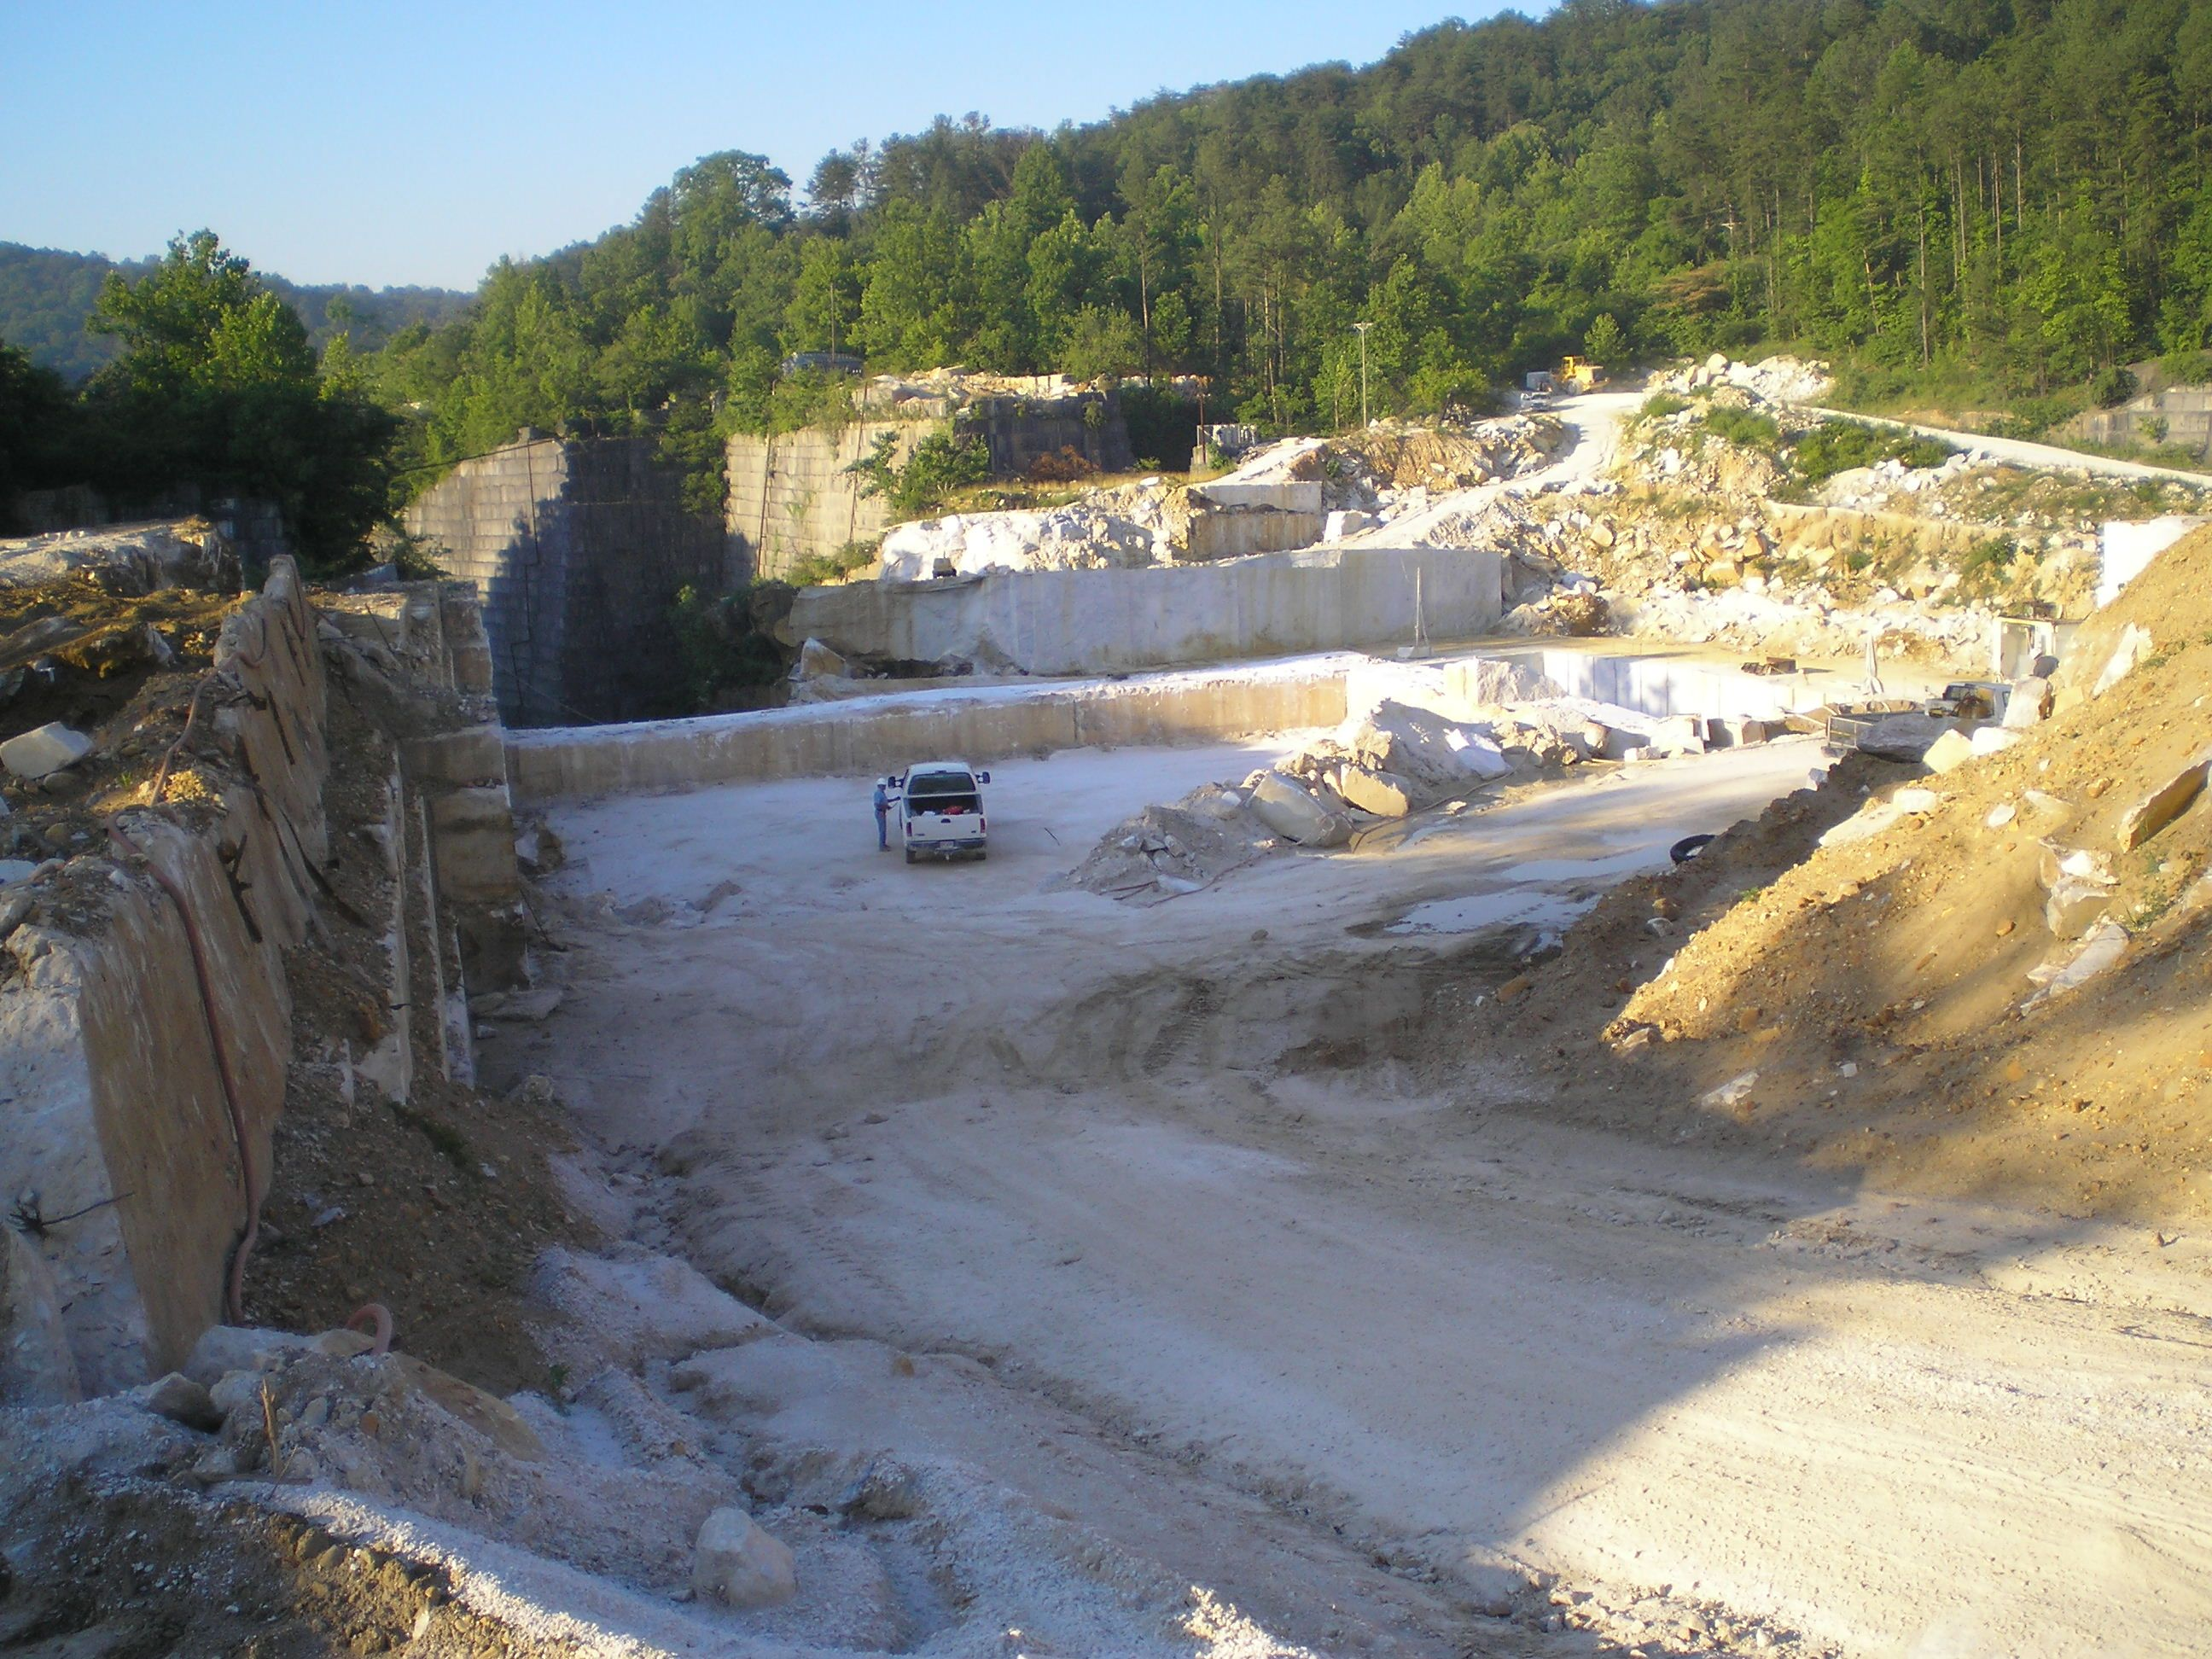 Entrance To The Georgia Marble Quarry Stone Quarry Outdoor American Continent